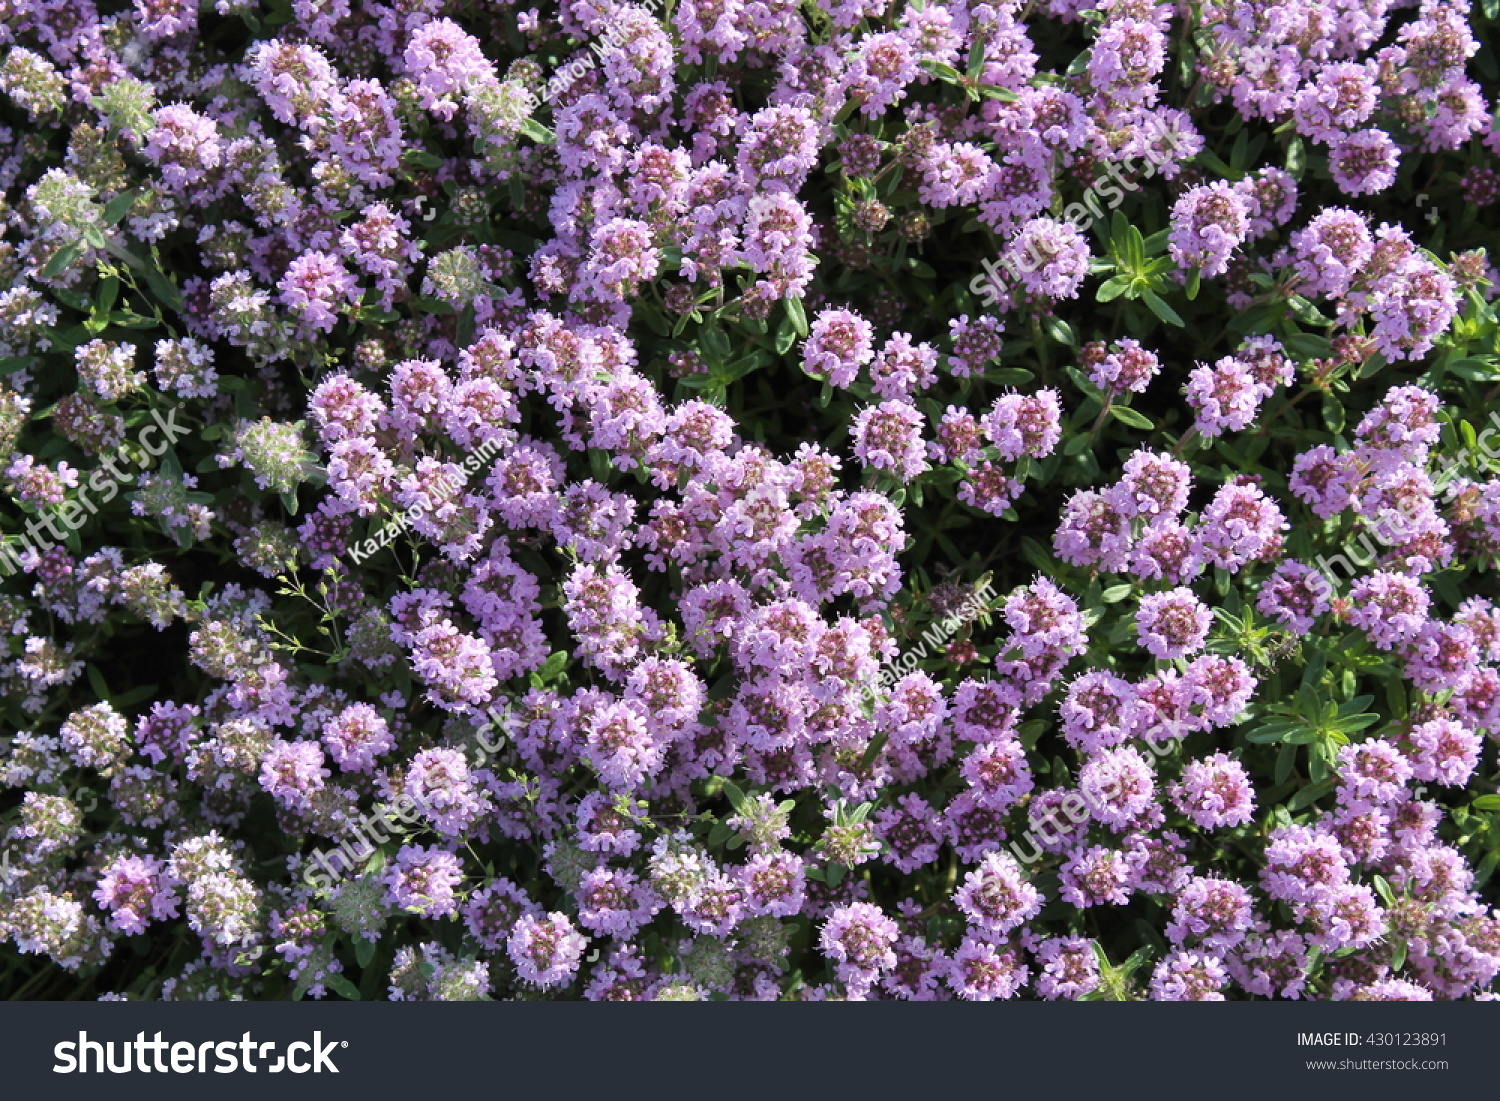 Common Garden Flowers Pink common thyme flowers pink garden thyme stock photo 430123891